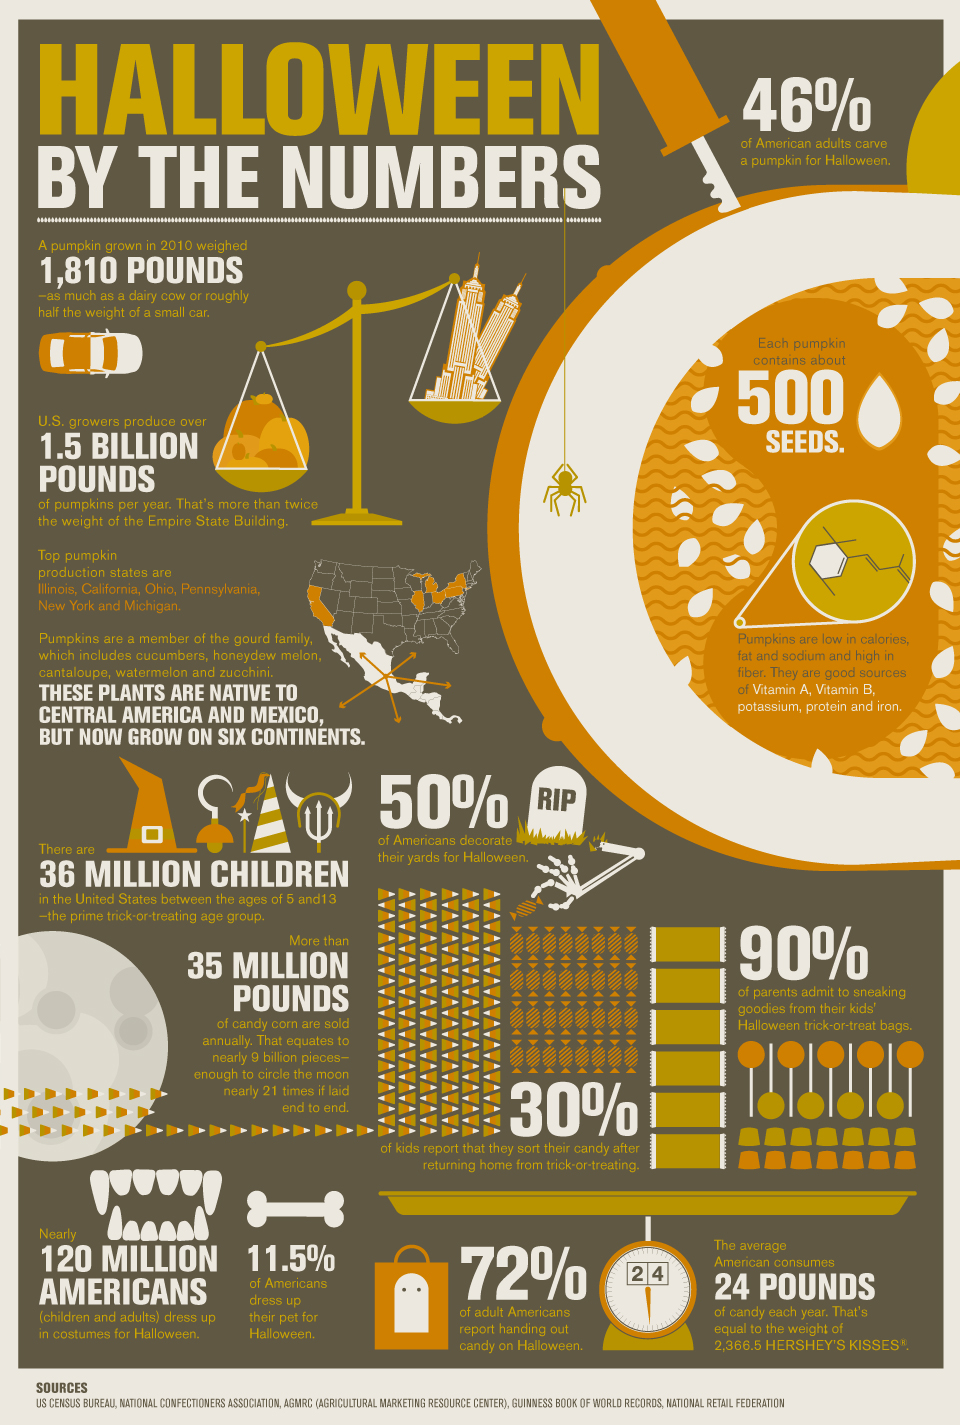 Pumpkin Facts - Halloween by the Numbers Interactive - HISTORY.com